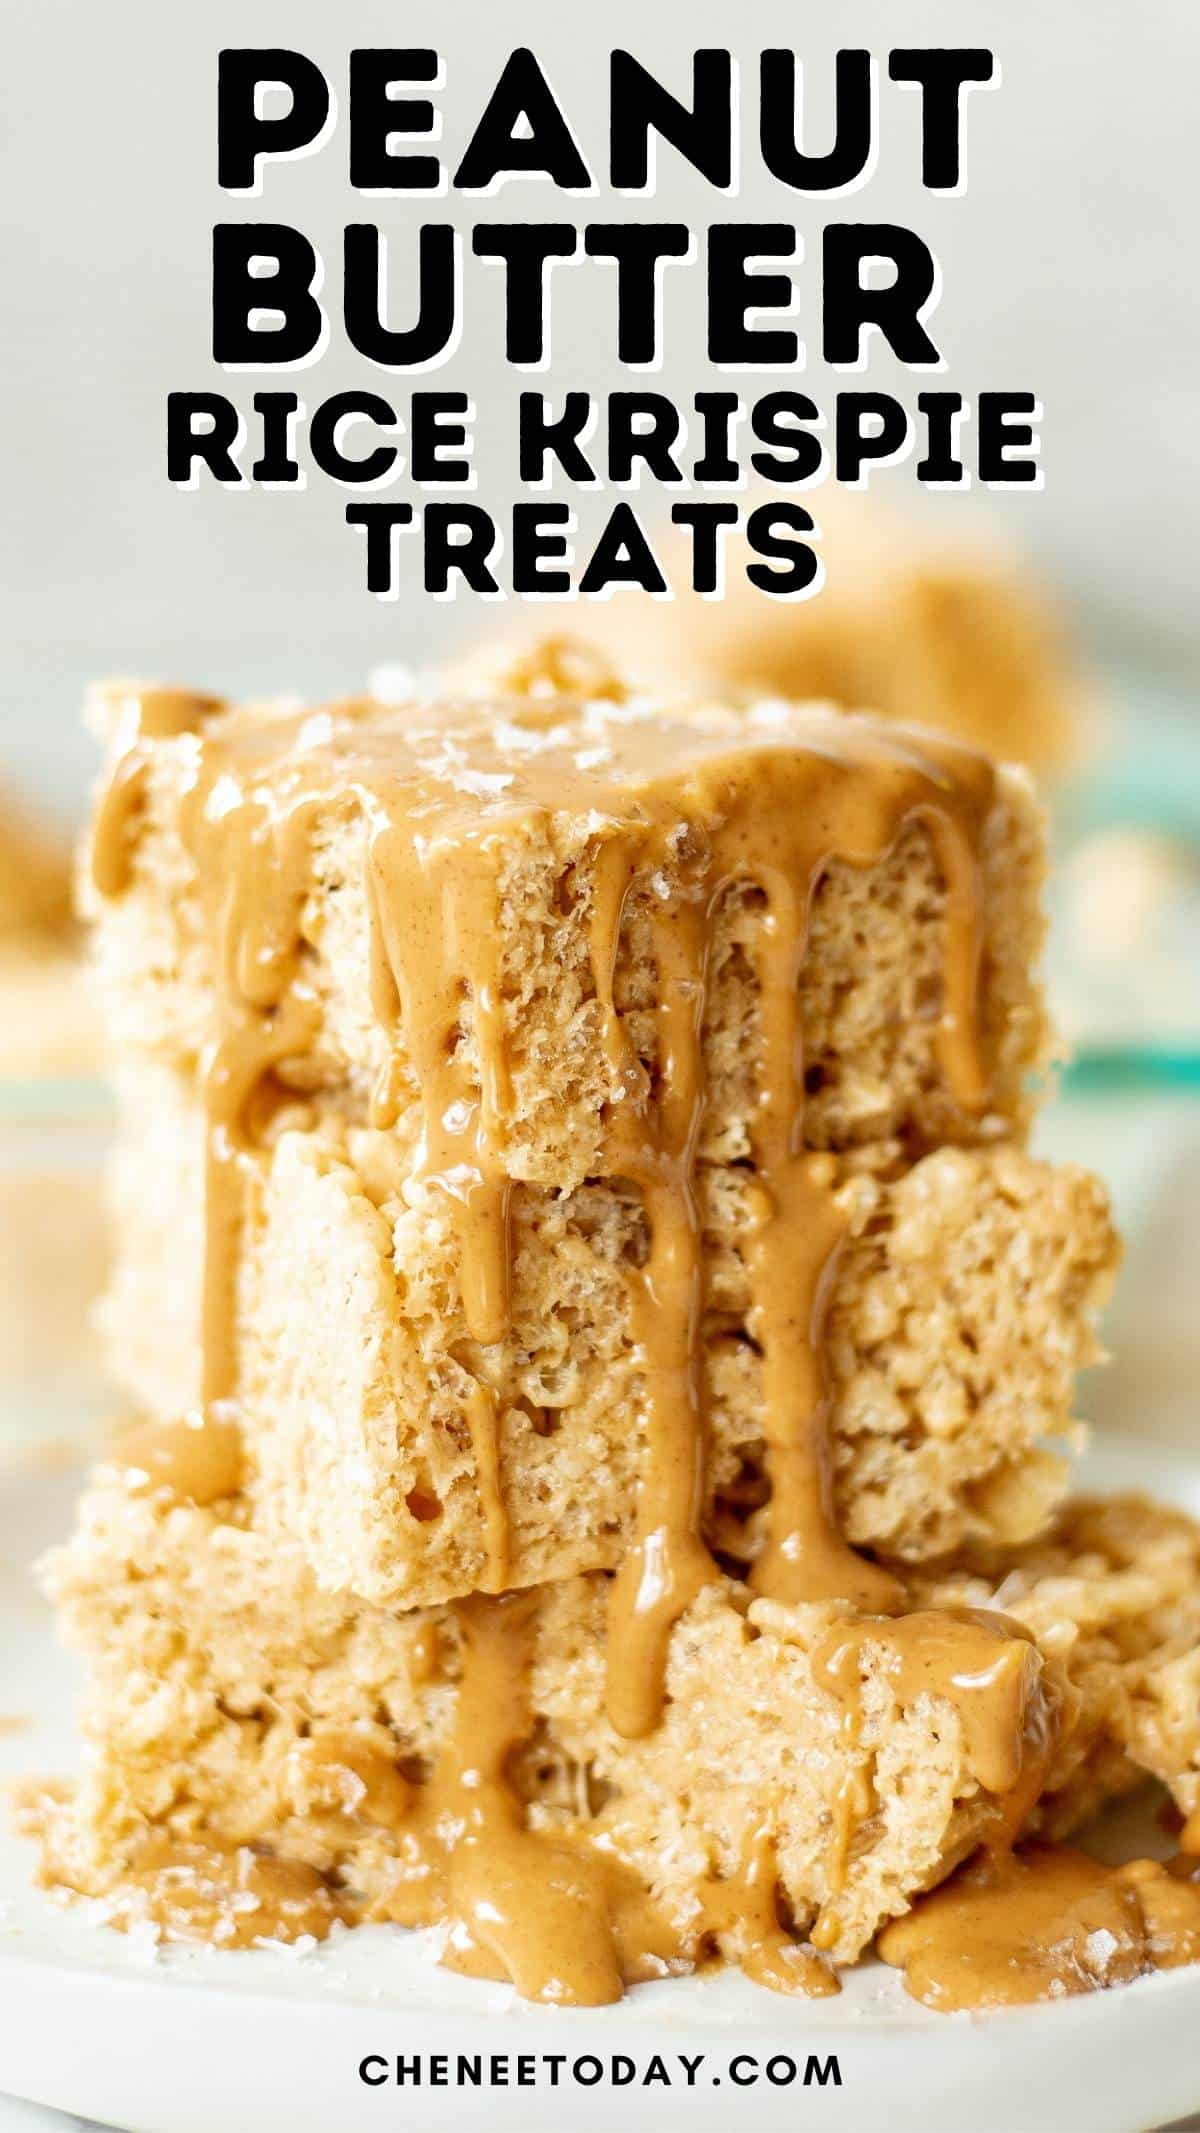 pin for peanut butter Rice Krispie treats - treats stacked together and drizzled with melted peanut butter